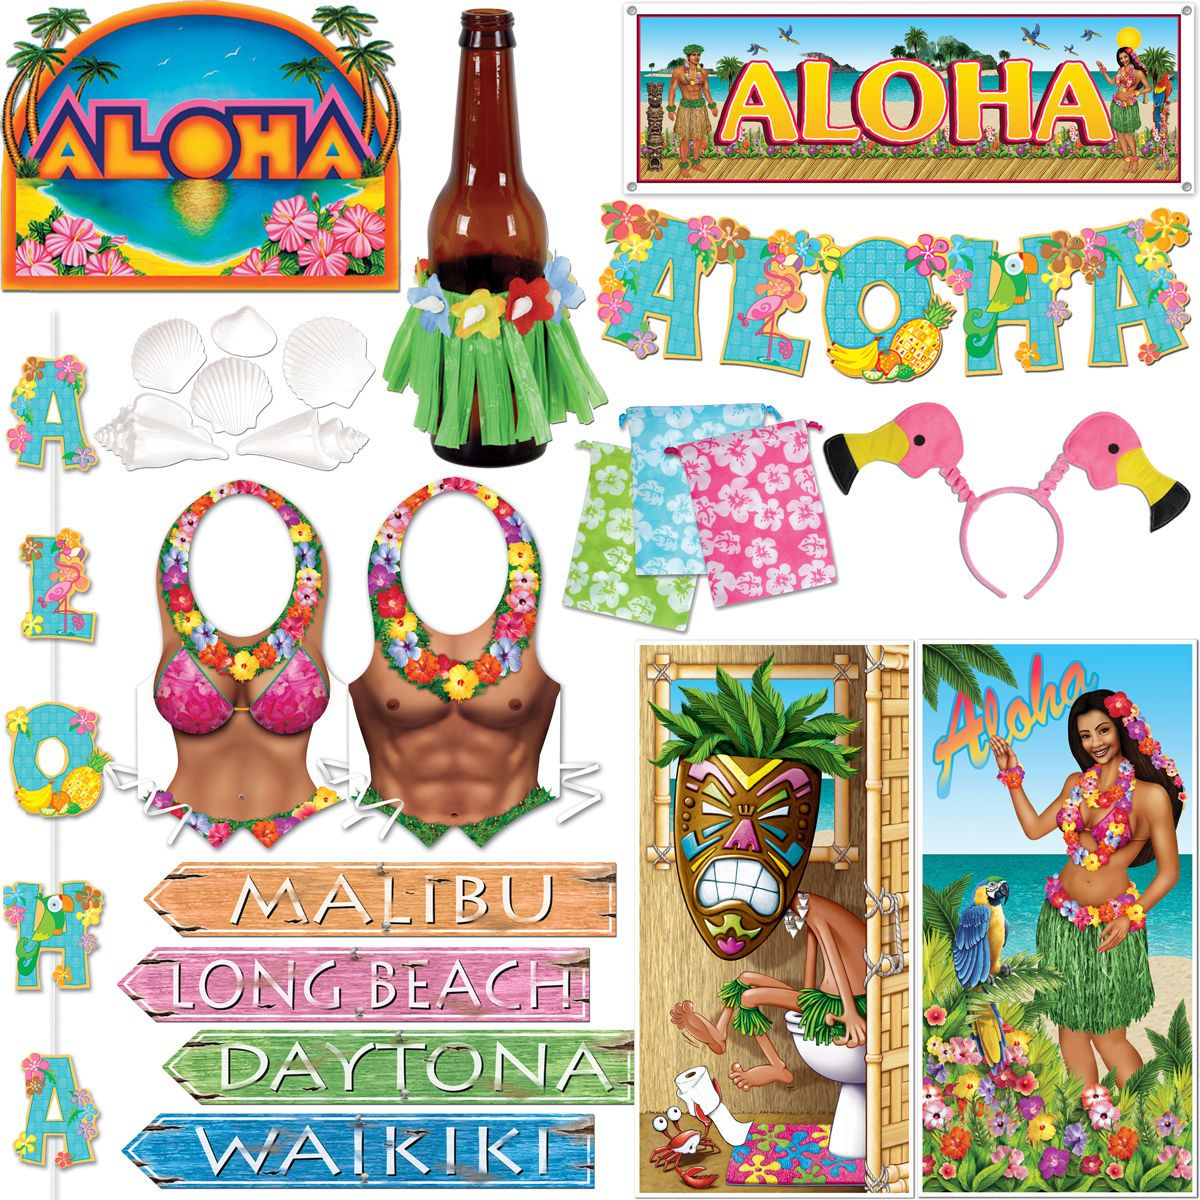 Dollhouse Miniatures In Las Vegas: Aloha Hawaii Deko